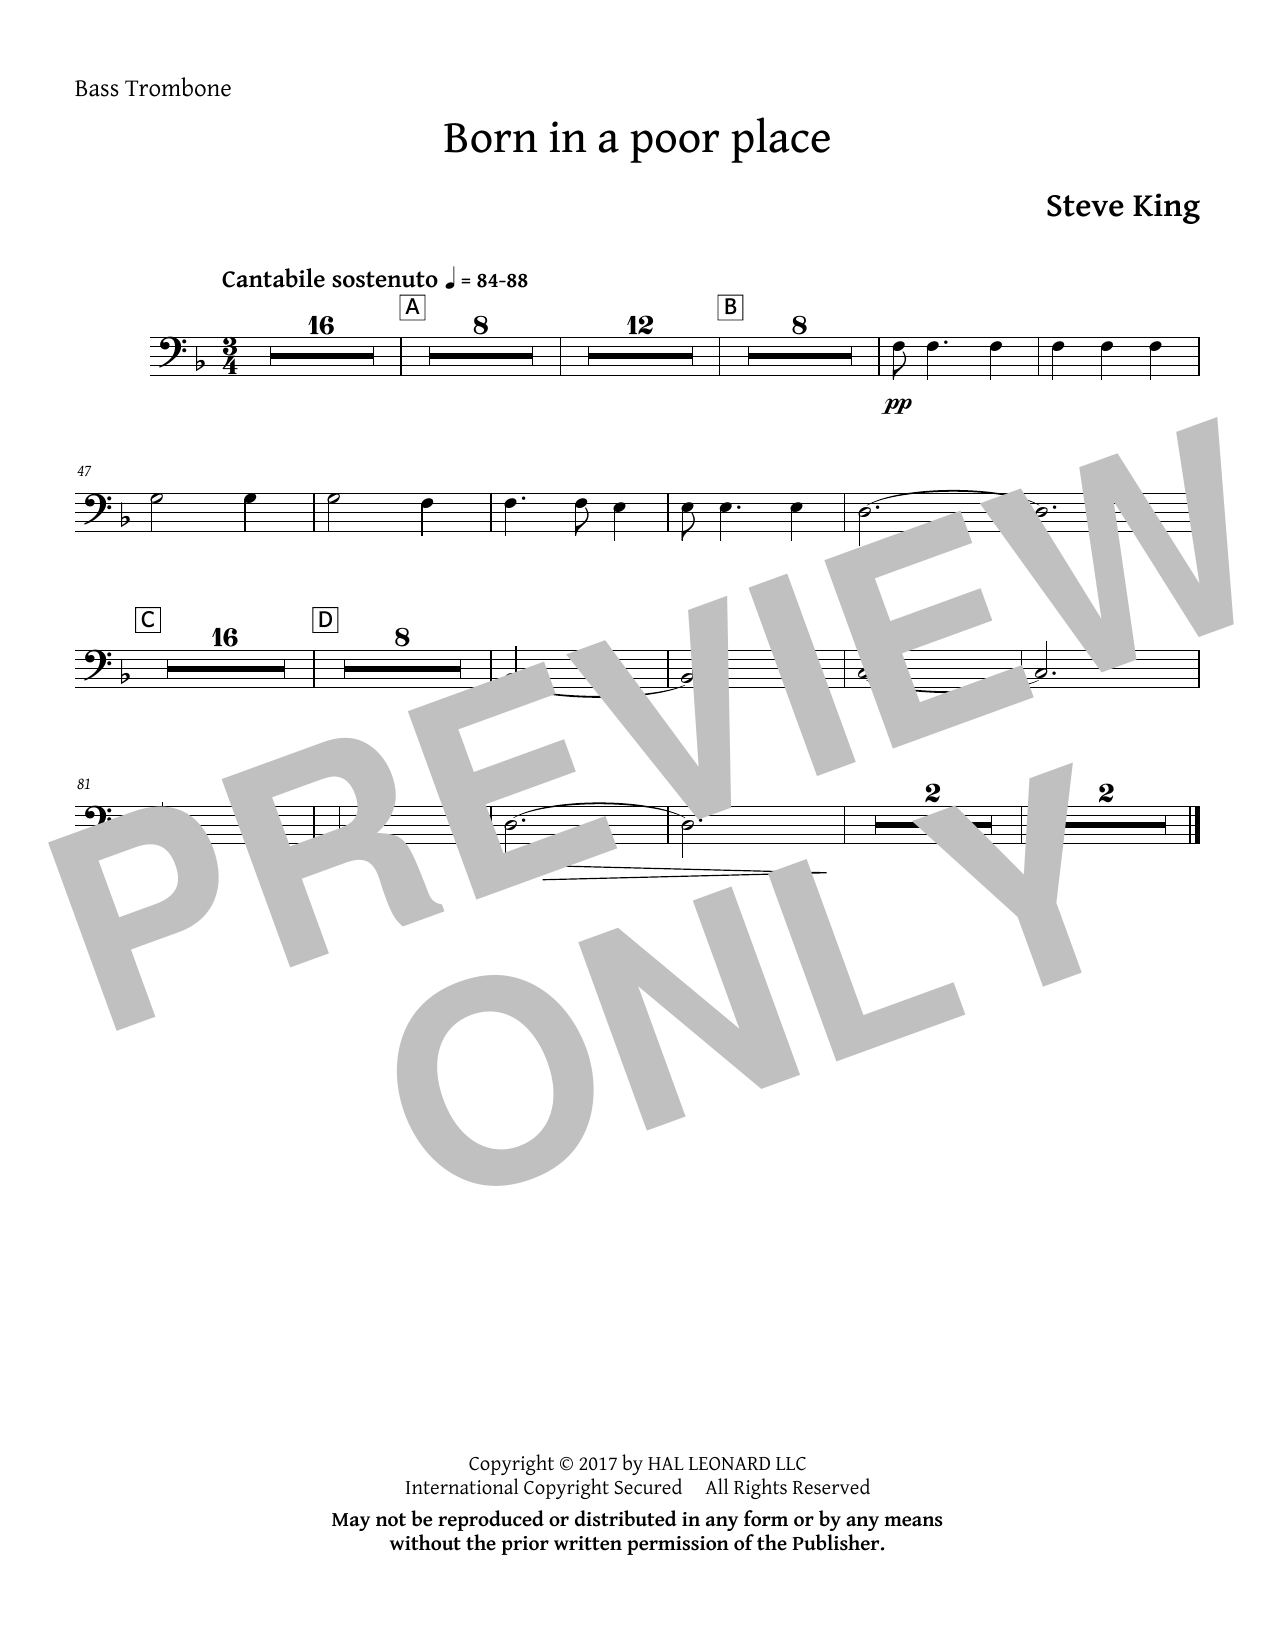 Born in a Poor Place - Bass Trombone Sheet Music